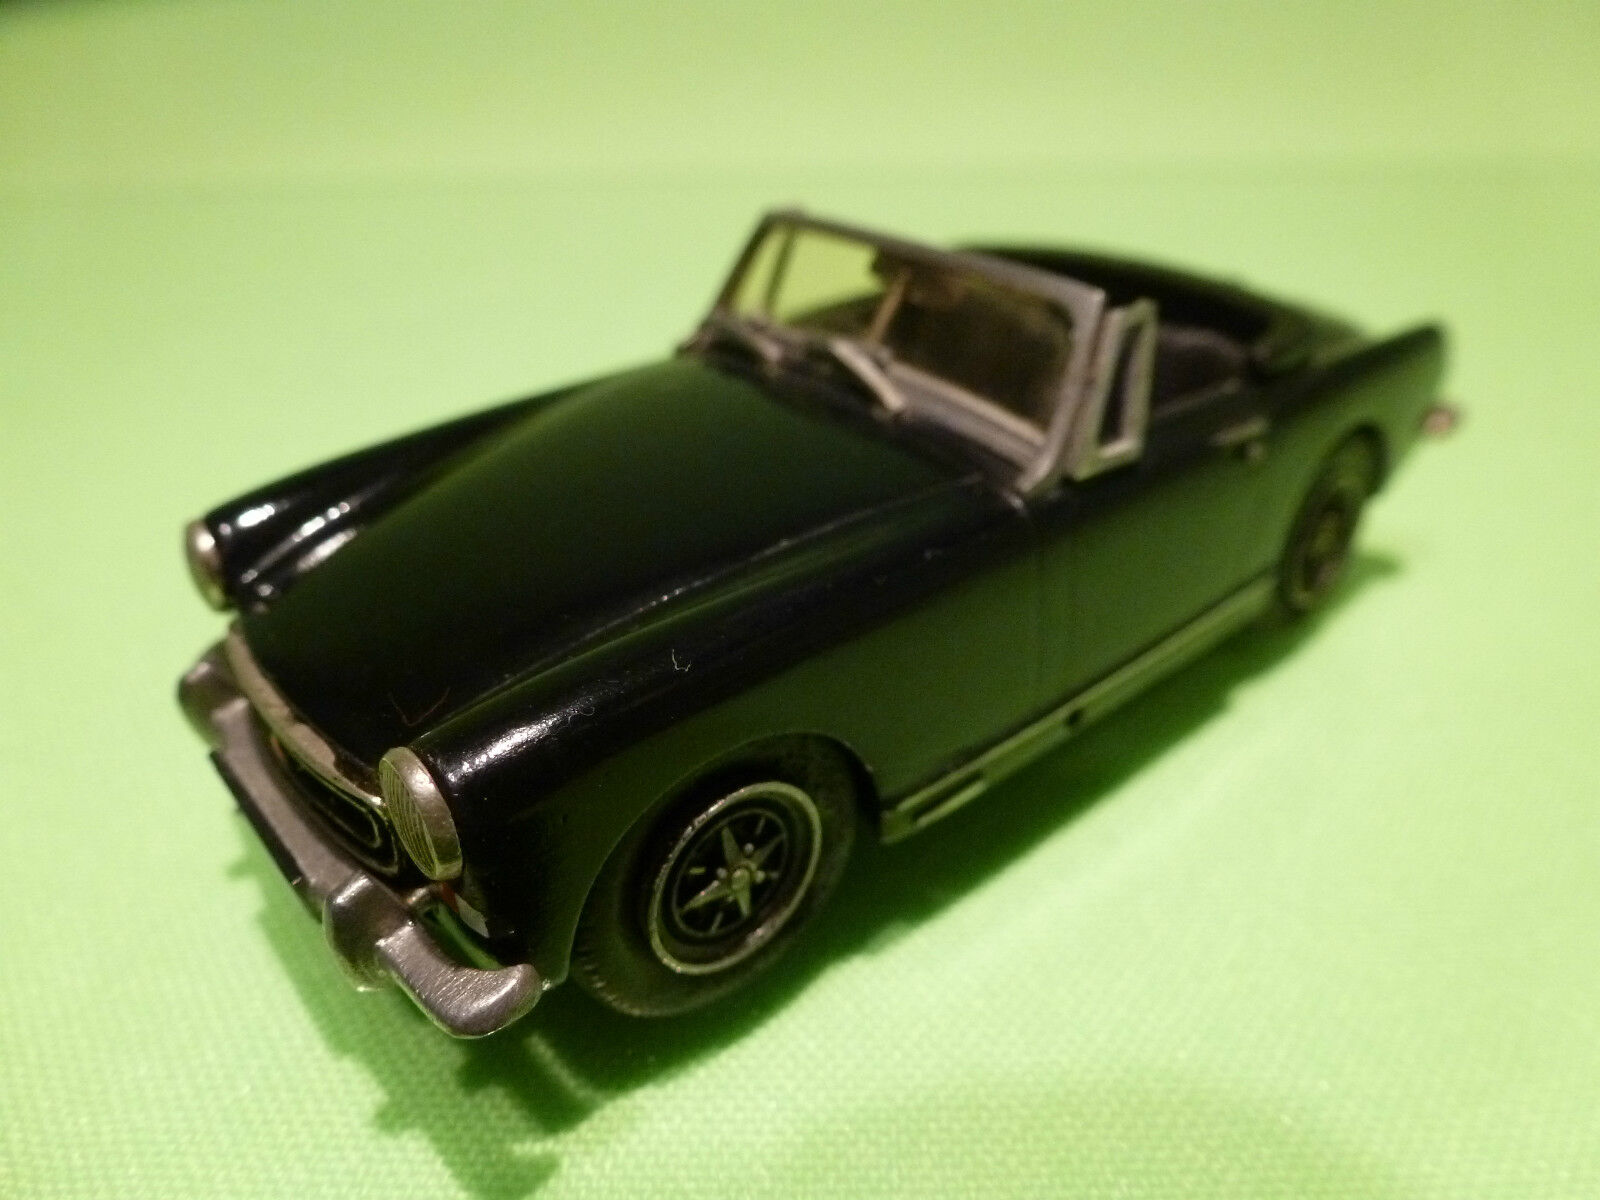 JEM METAL MINIATURES 1 43 MG MIDGET - S WINDOW  - RARE SELTEN  - GOOD CONDITION